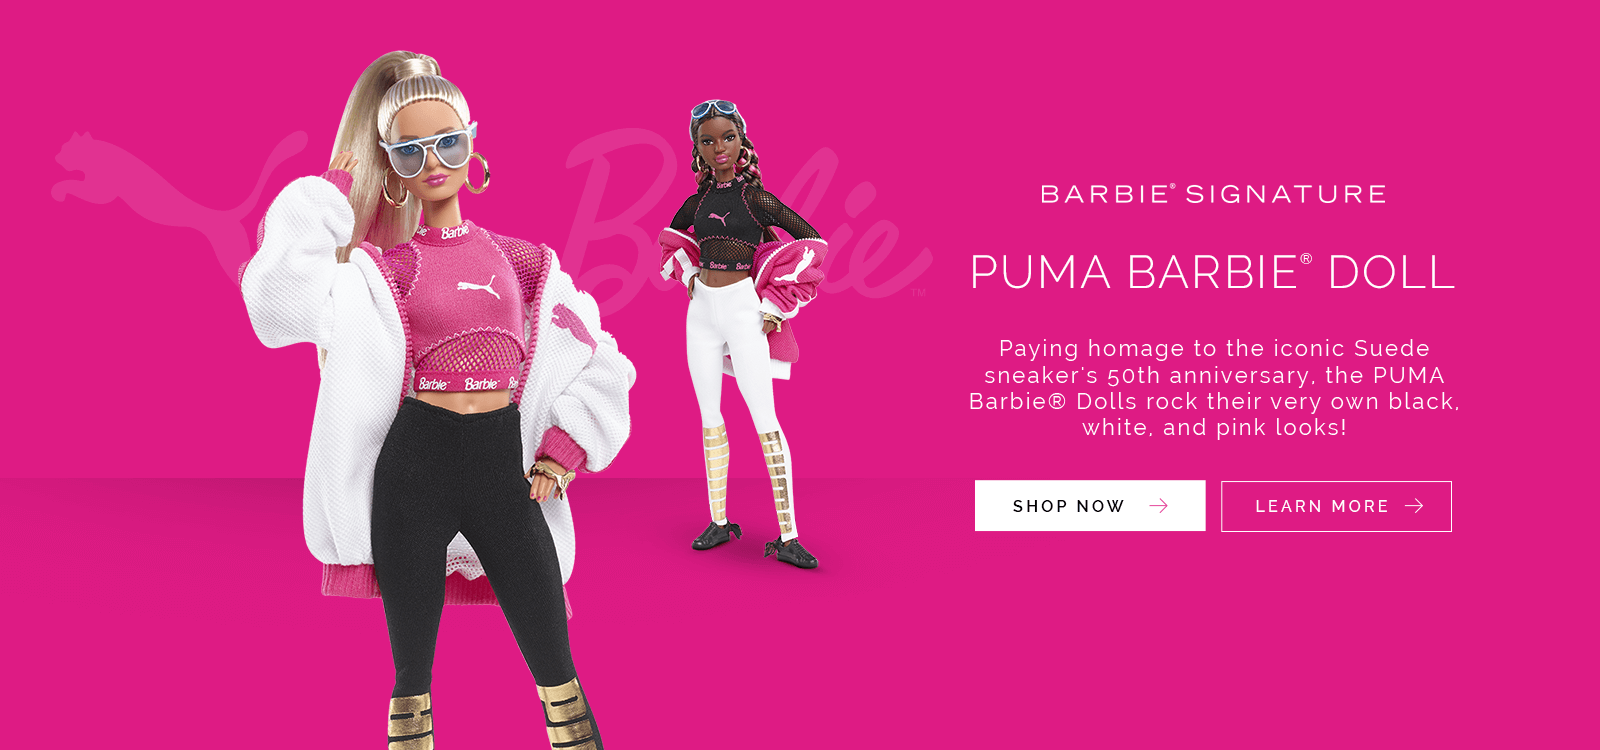 PUMA Barbie Dolls